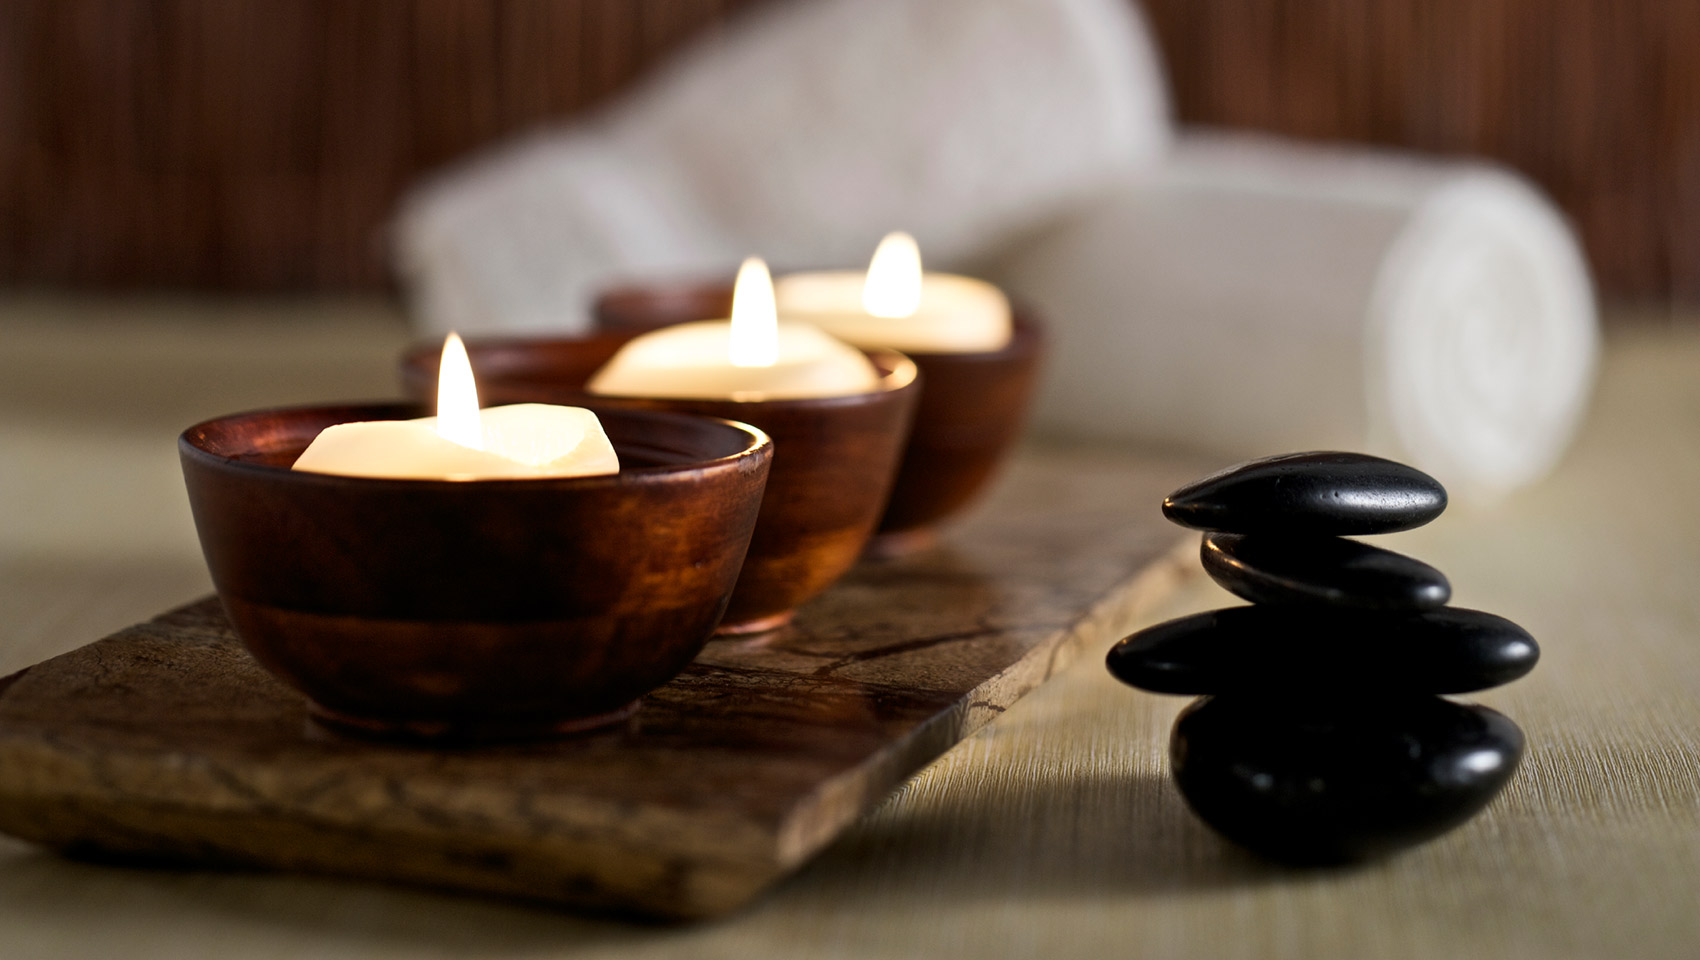 In Room Spa Candles